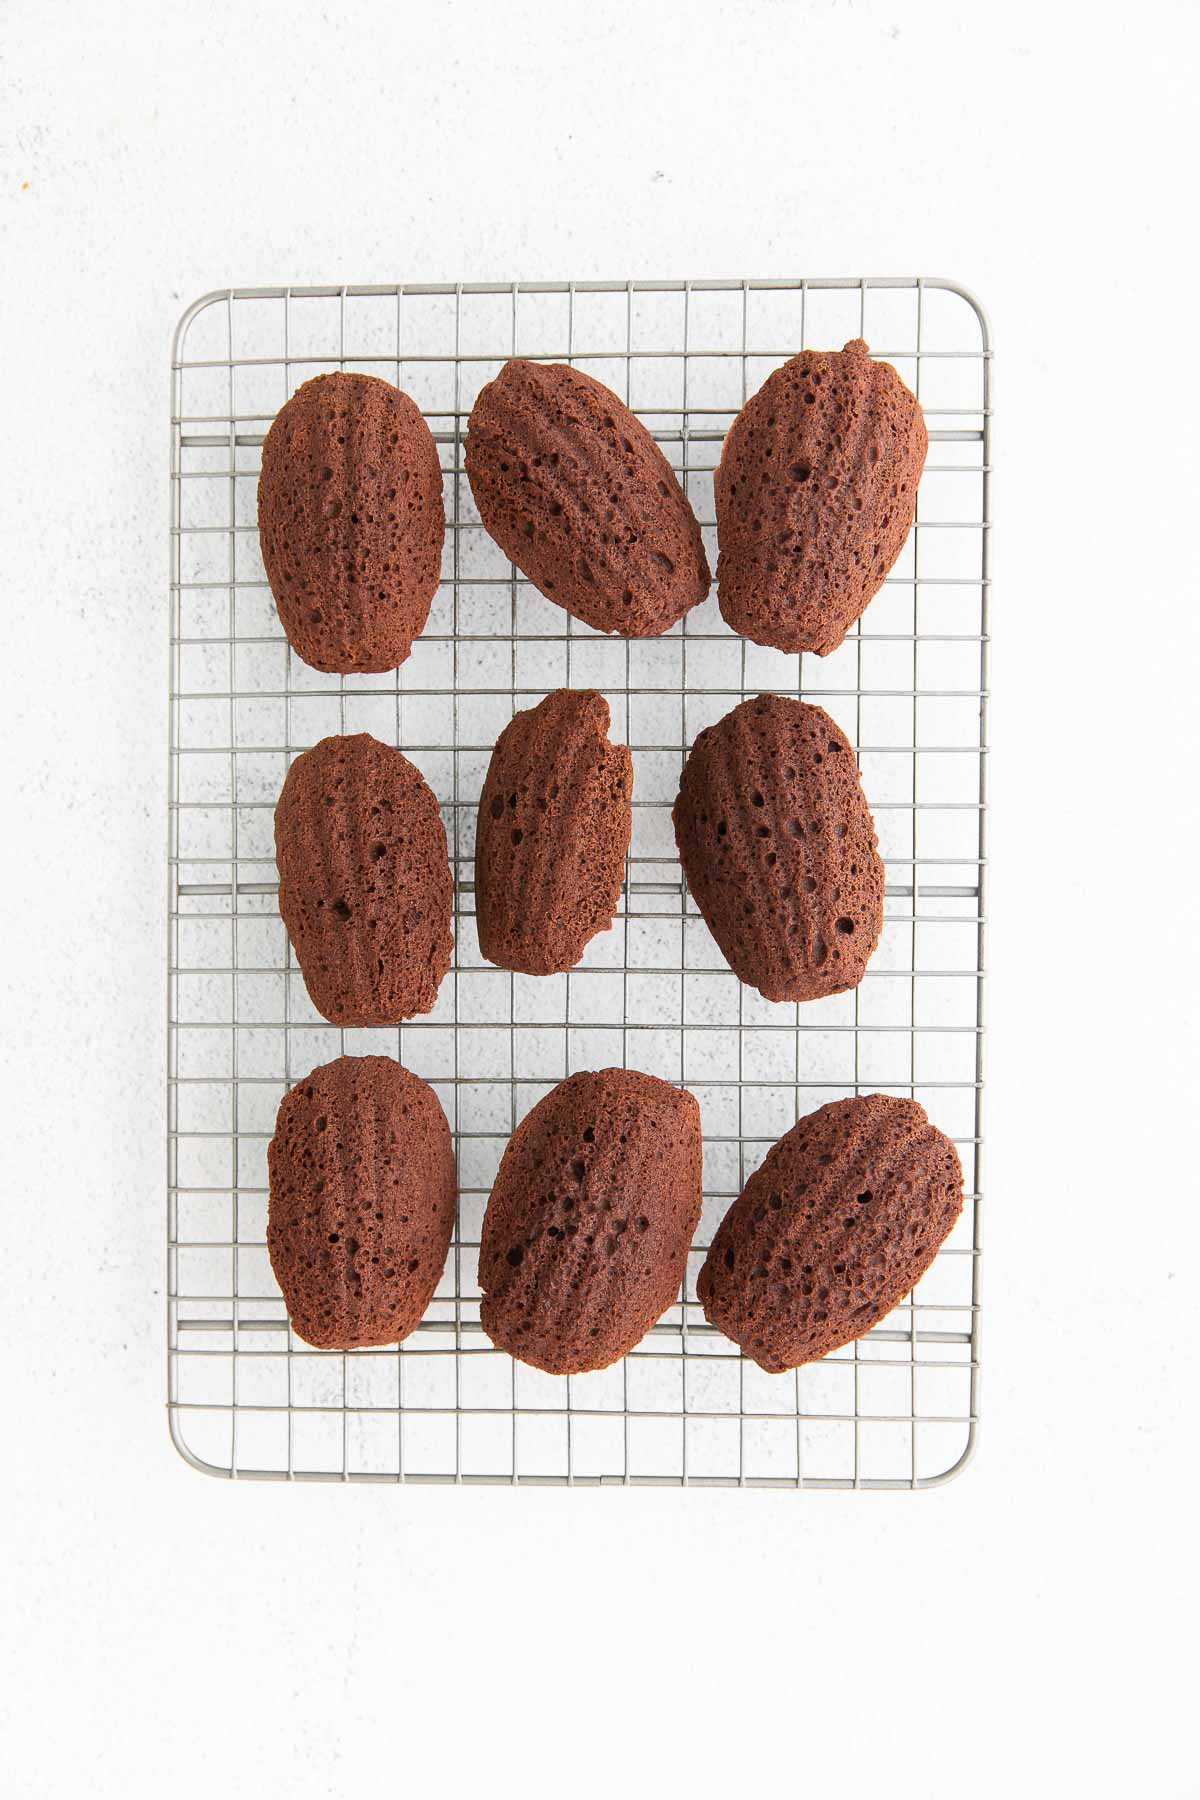 chocolate madeleines cooling on rack